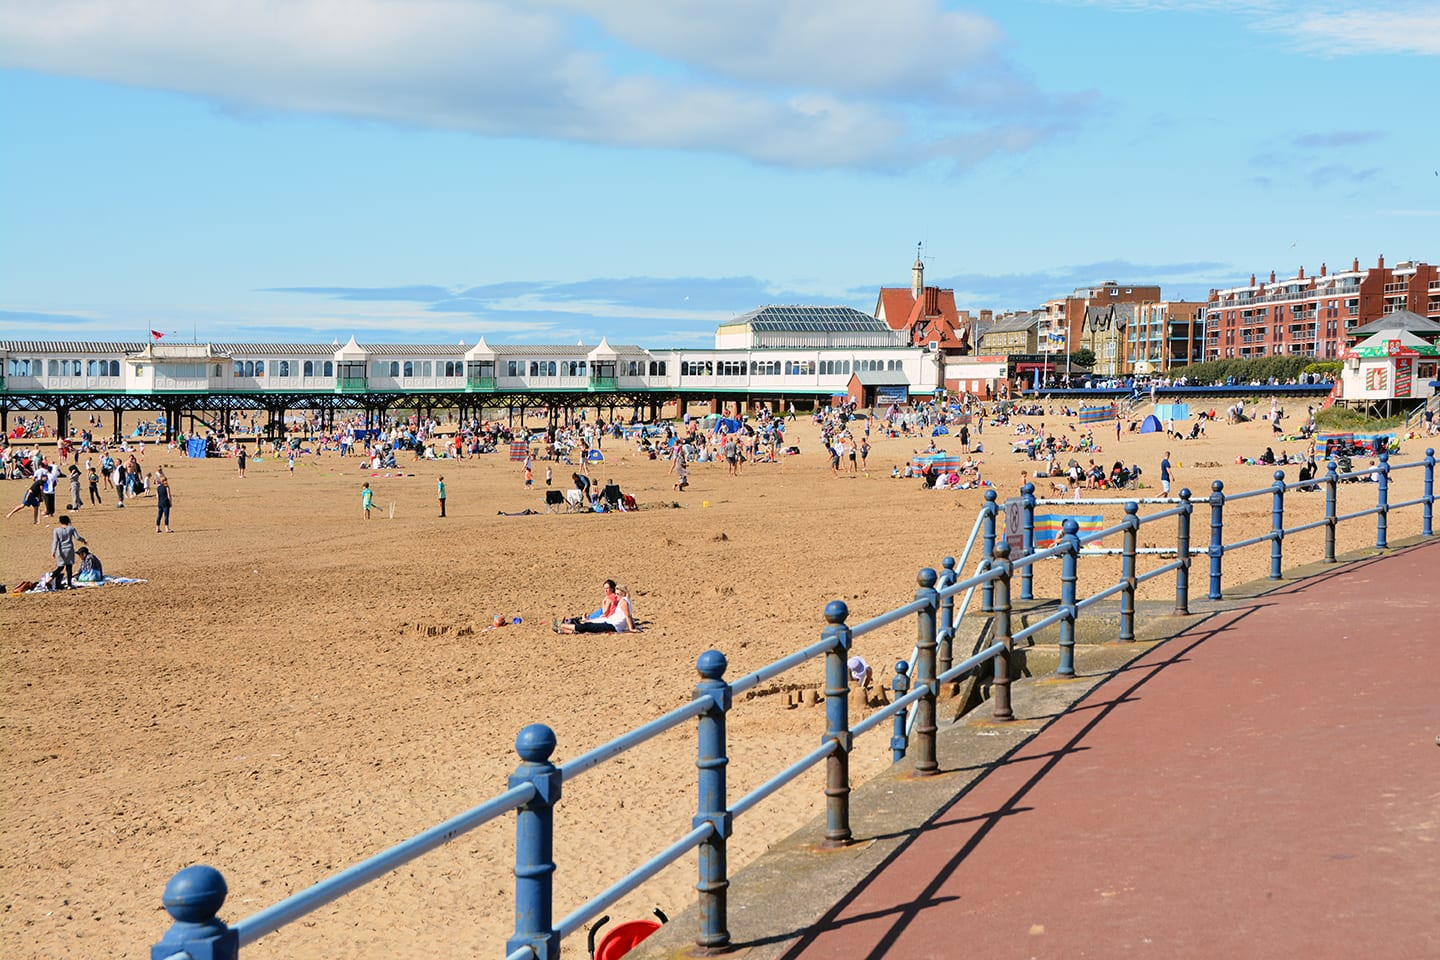 St Annes Beach and promenade on the Fylde Coast seafront